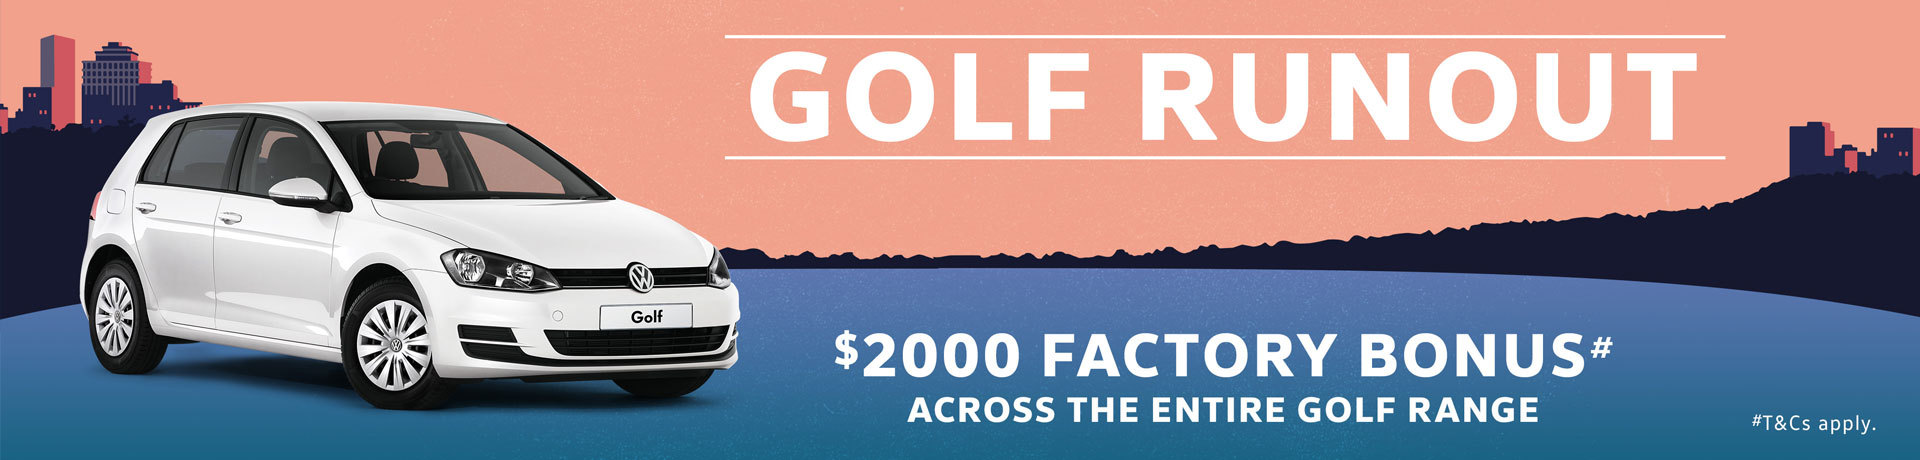 Volkswagen - National Offer - $2000 Factory Bonus Across the Golf Range